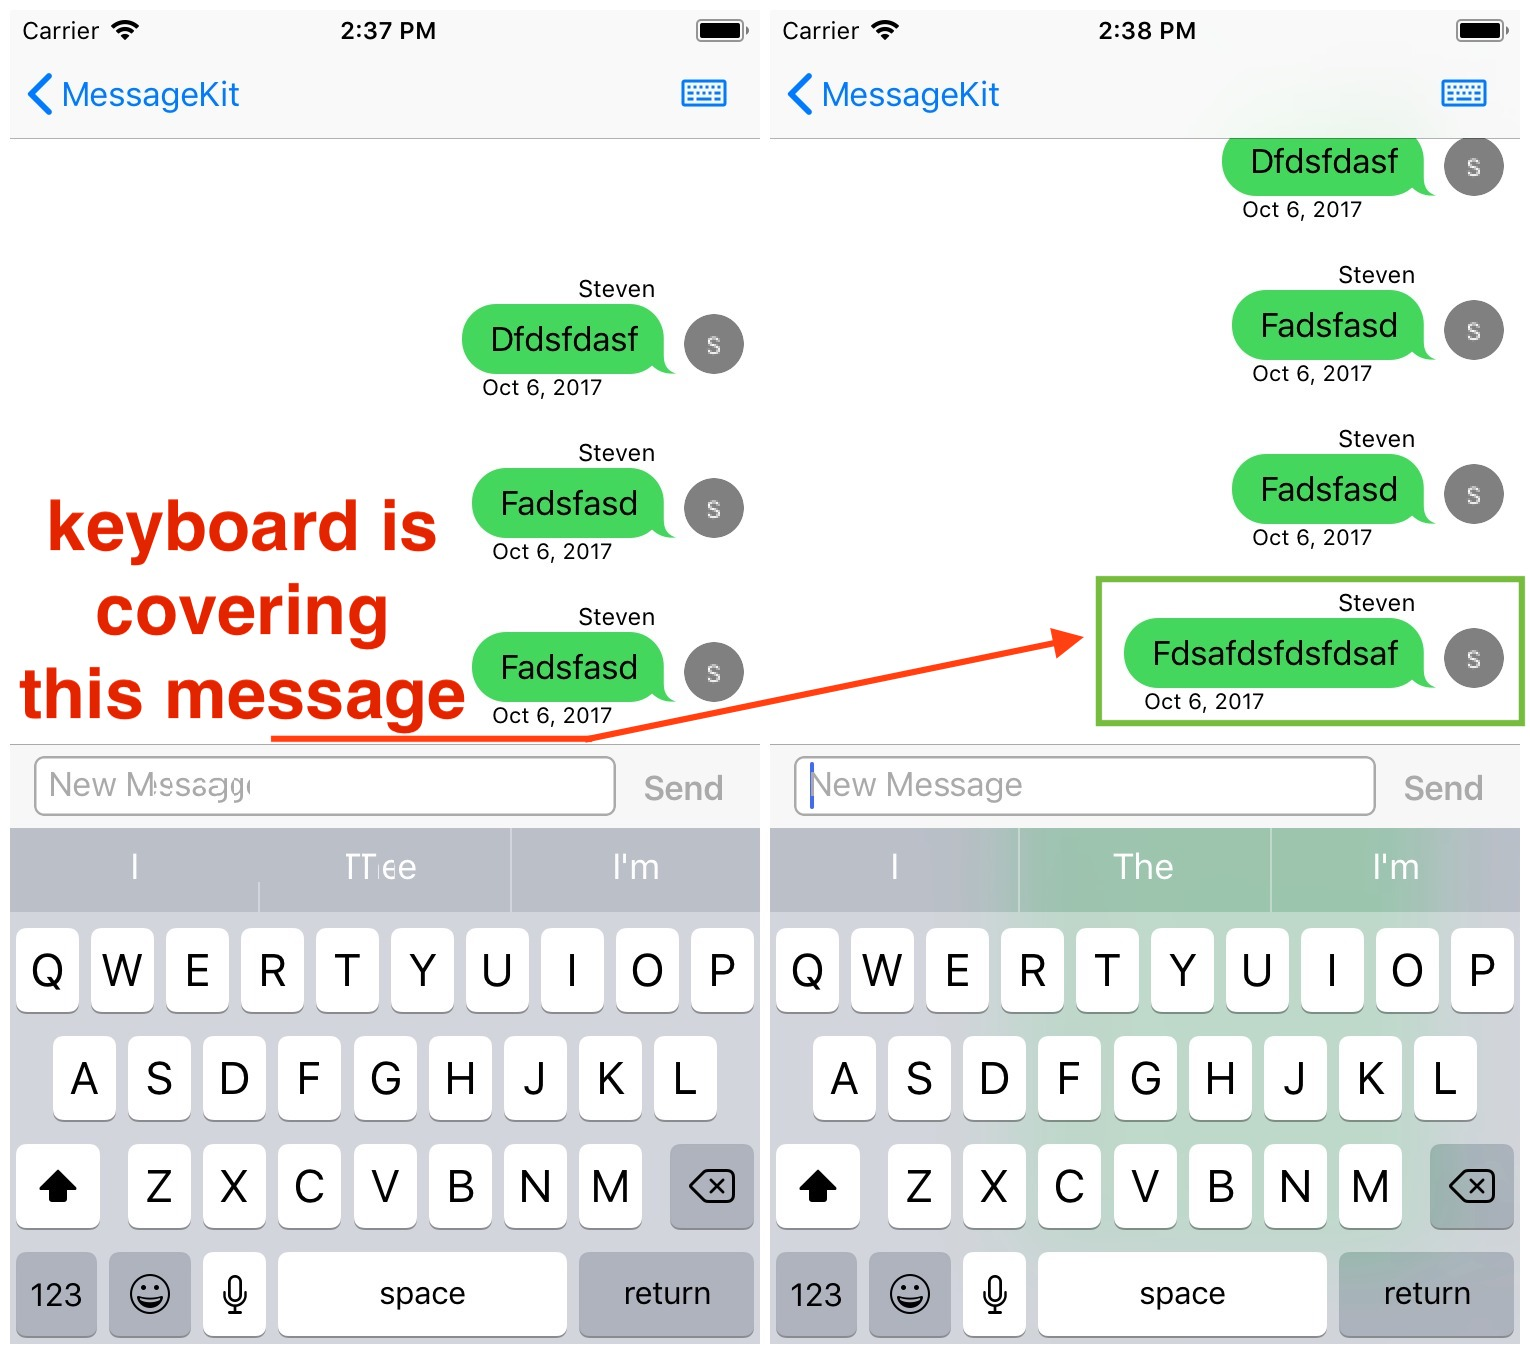 Keyboard will cover 4th and 5th messages in the newly initiated chat